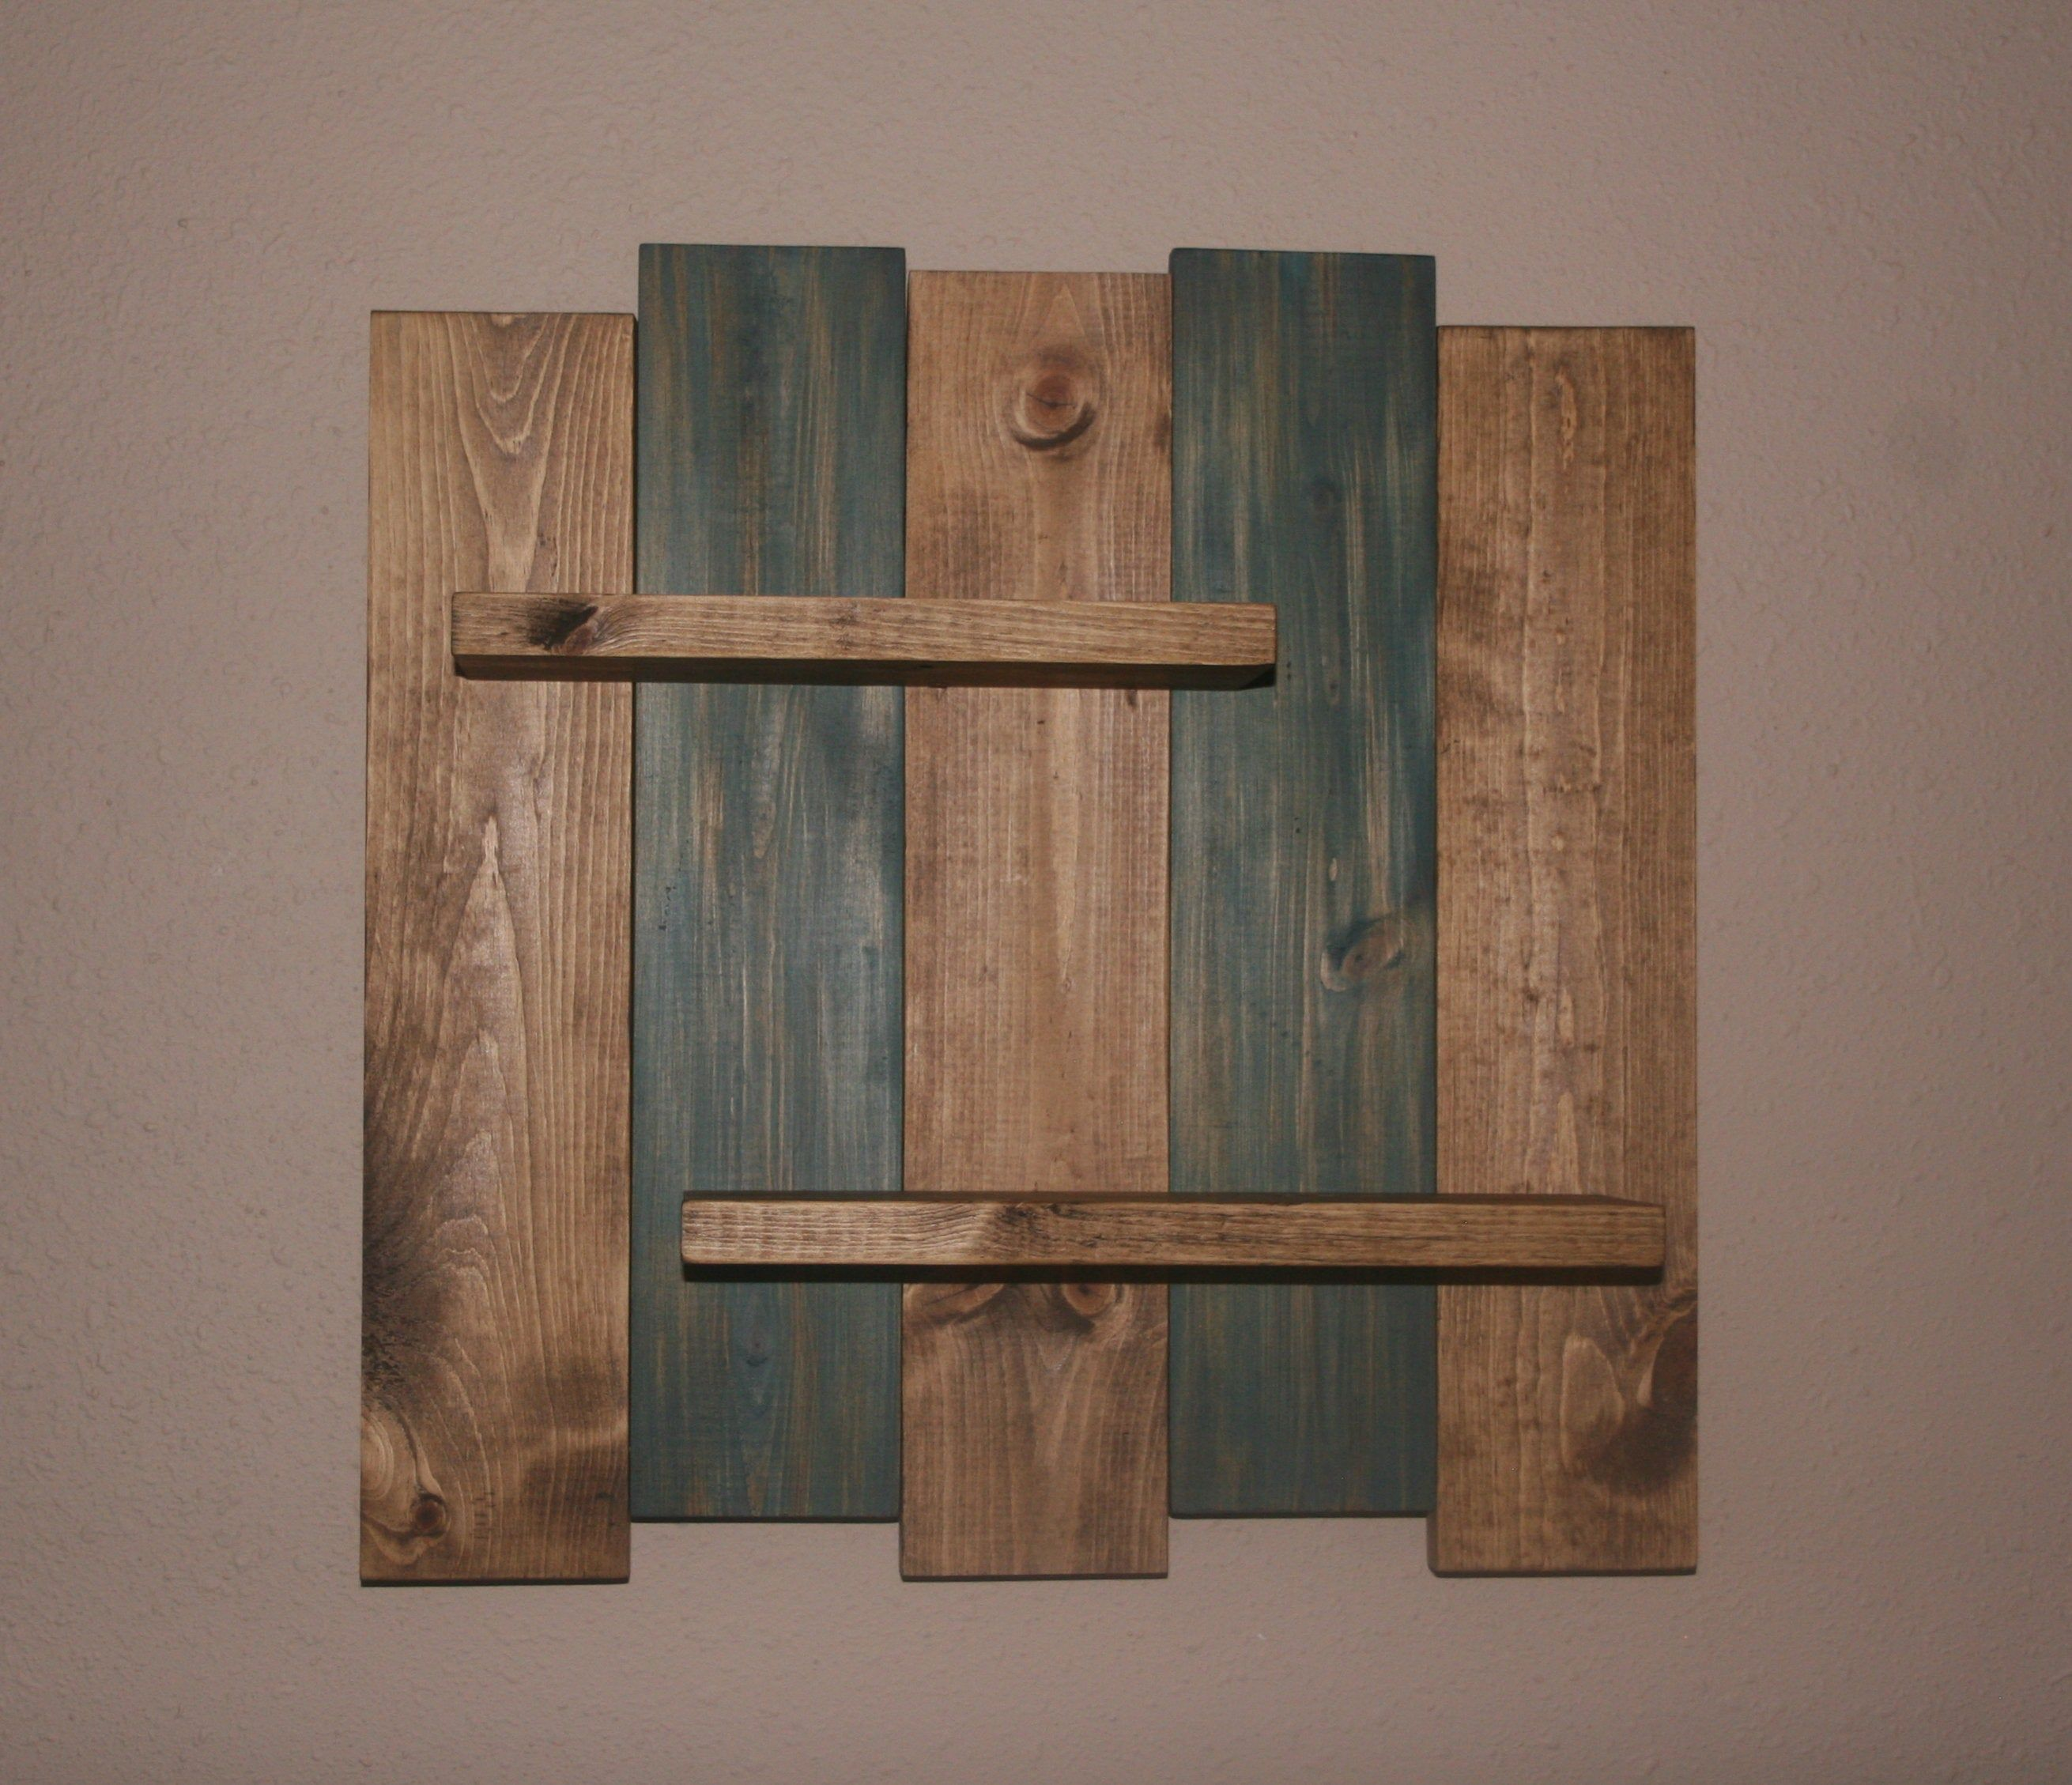 Rustic Wood Wall Shelf Reclaimed Wood Shelf Distressed Pallet Wood Country Home Decor Western Oak Wall Decor Farmhouse Wall Shelf In 2020 Reclaimed Wood Shelves Rustic Wall Shelves Distressed Wood Wall